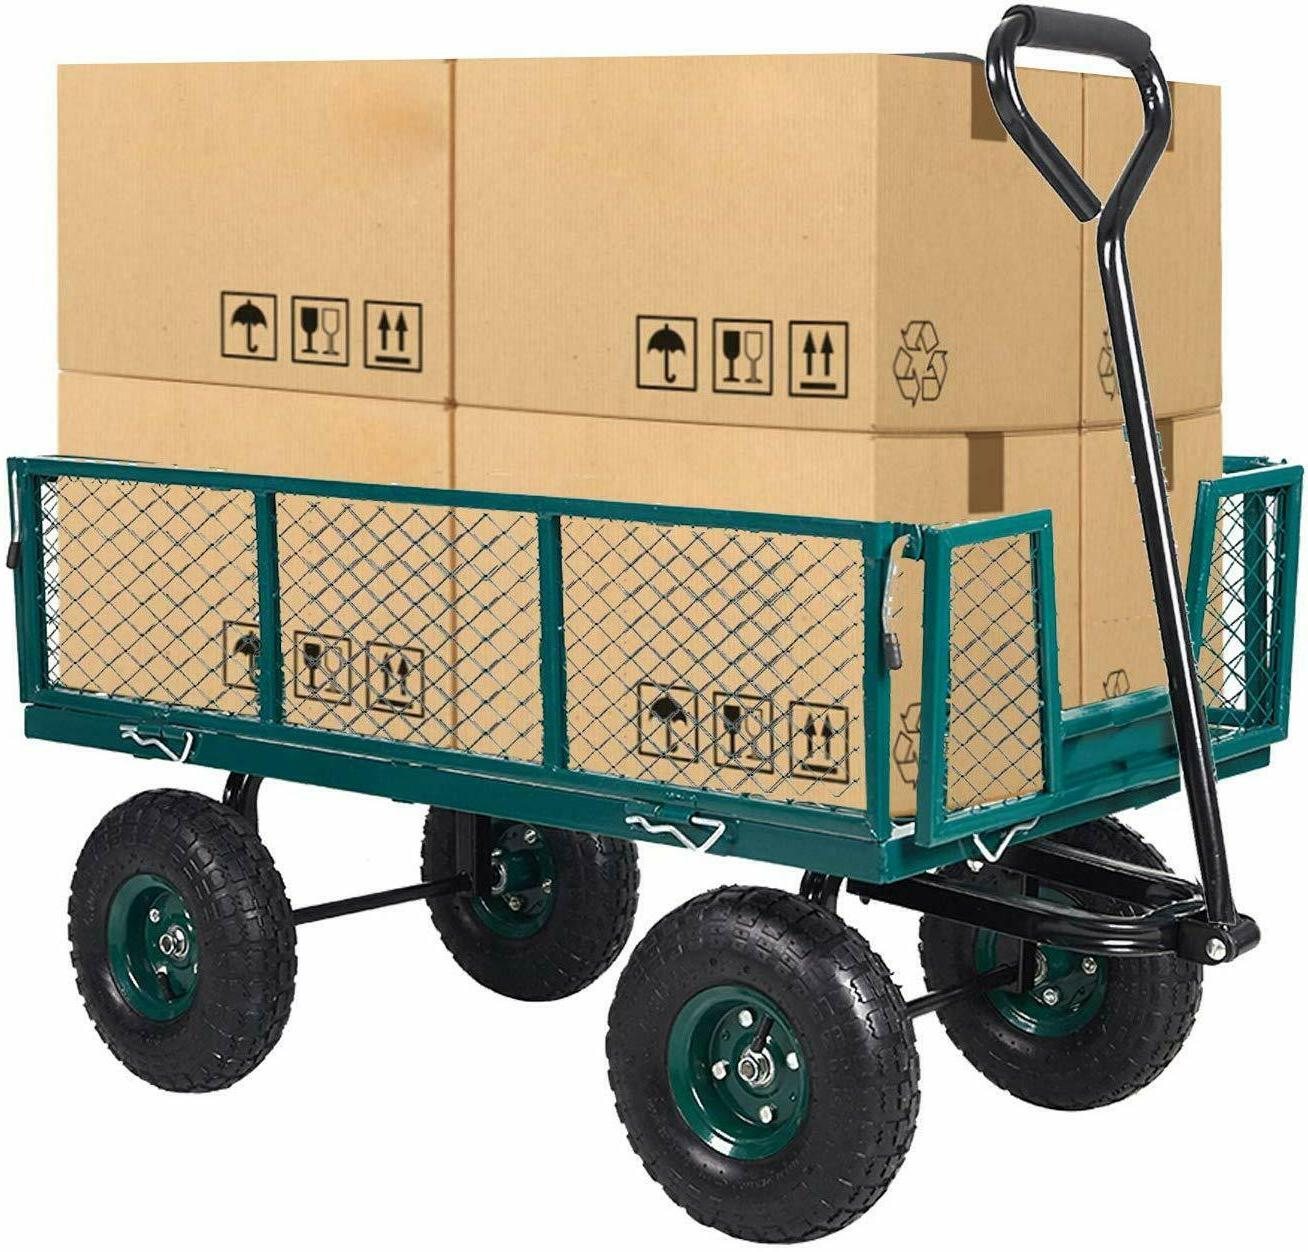 Home&Garden Steel Mesh/Wagon with Sides 550Lbs Capacity